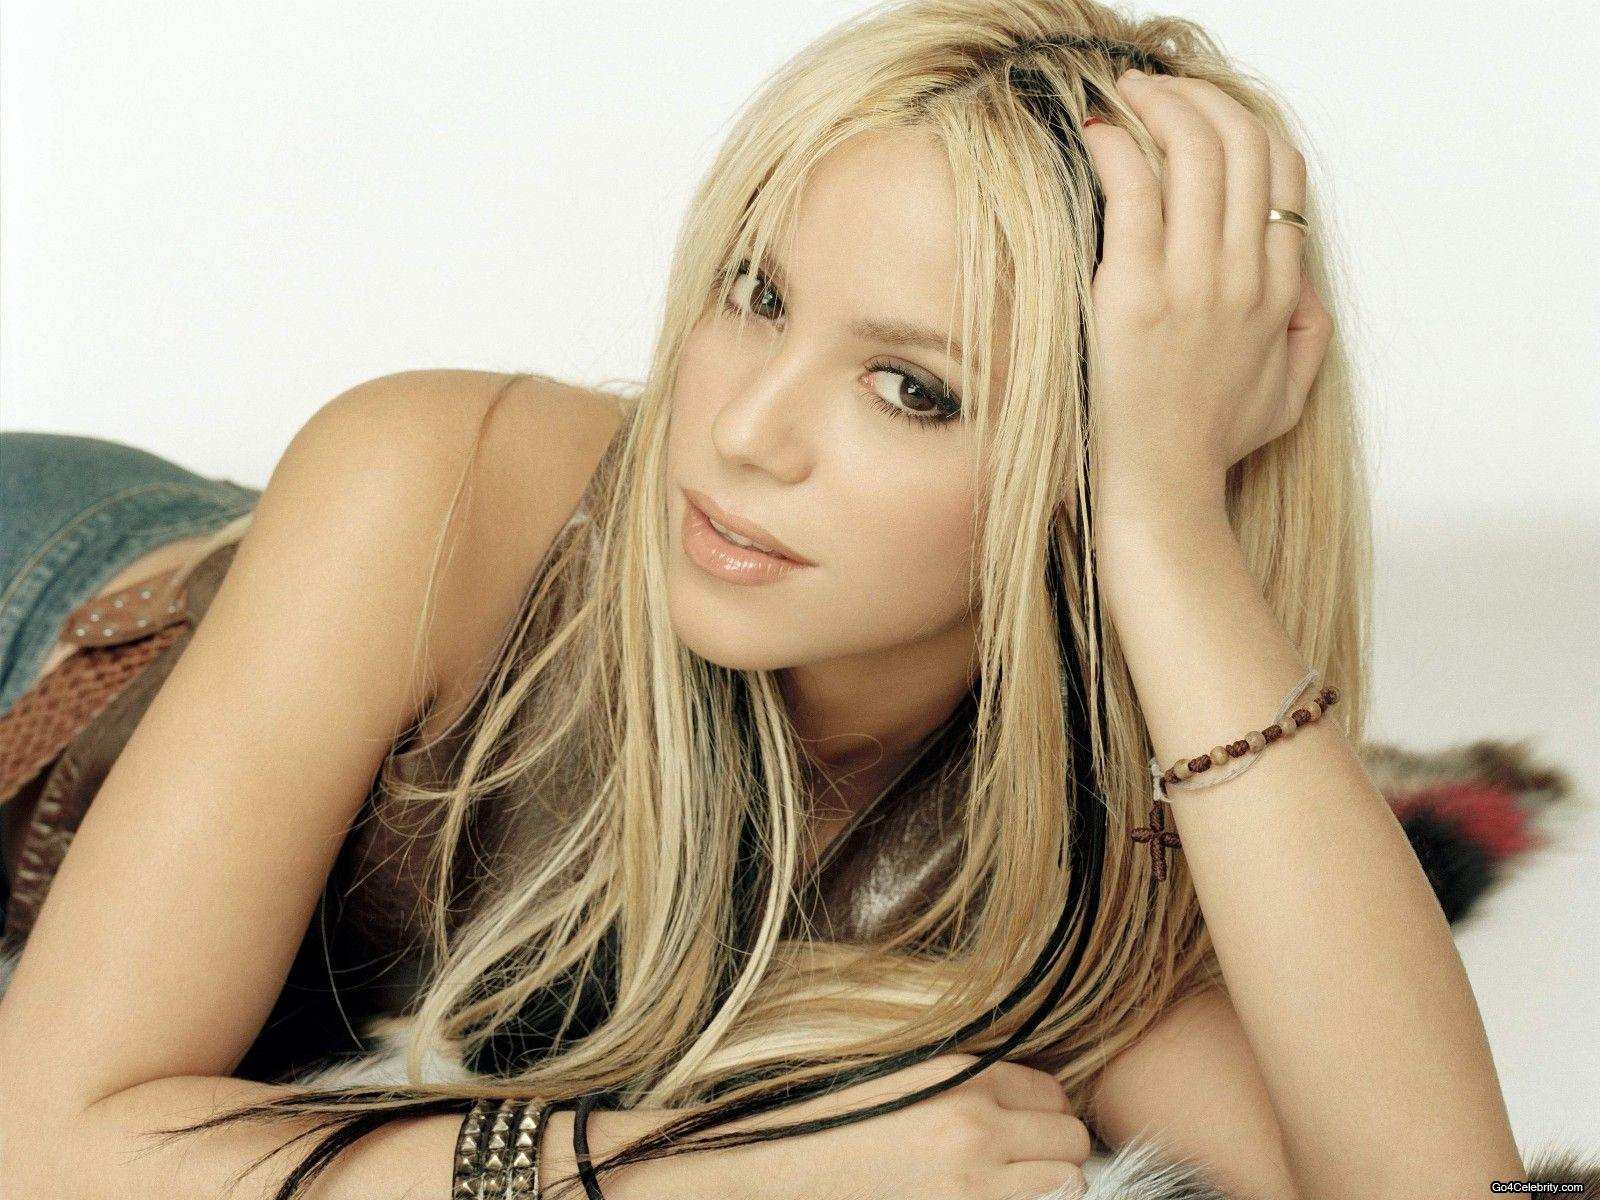 Shakira Wallpaper Hd Wallpapers Free Images